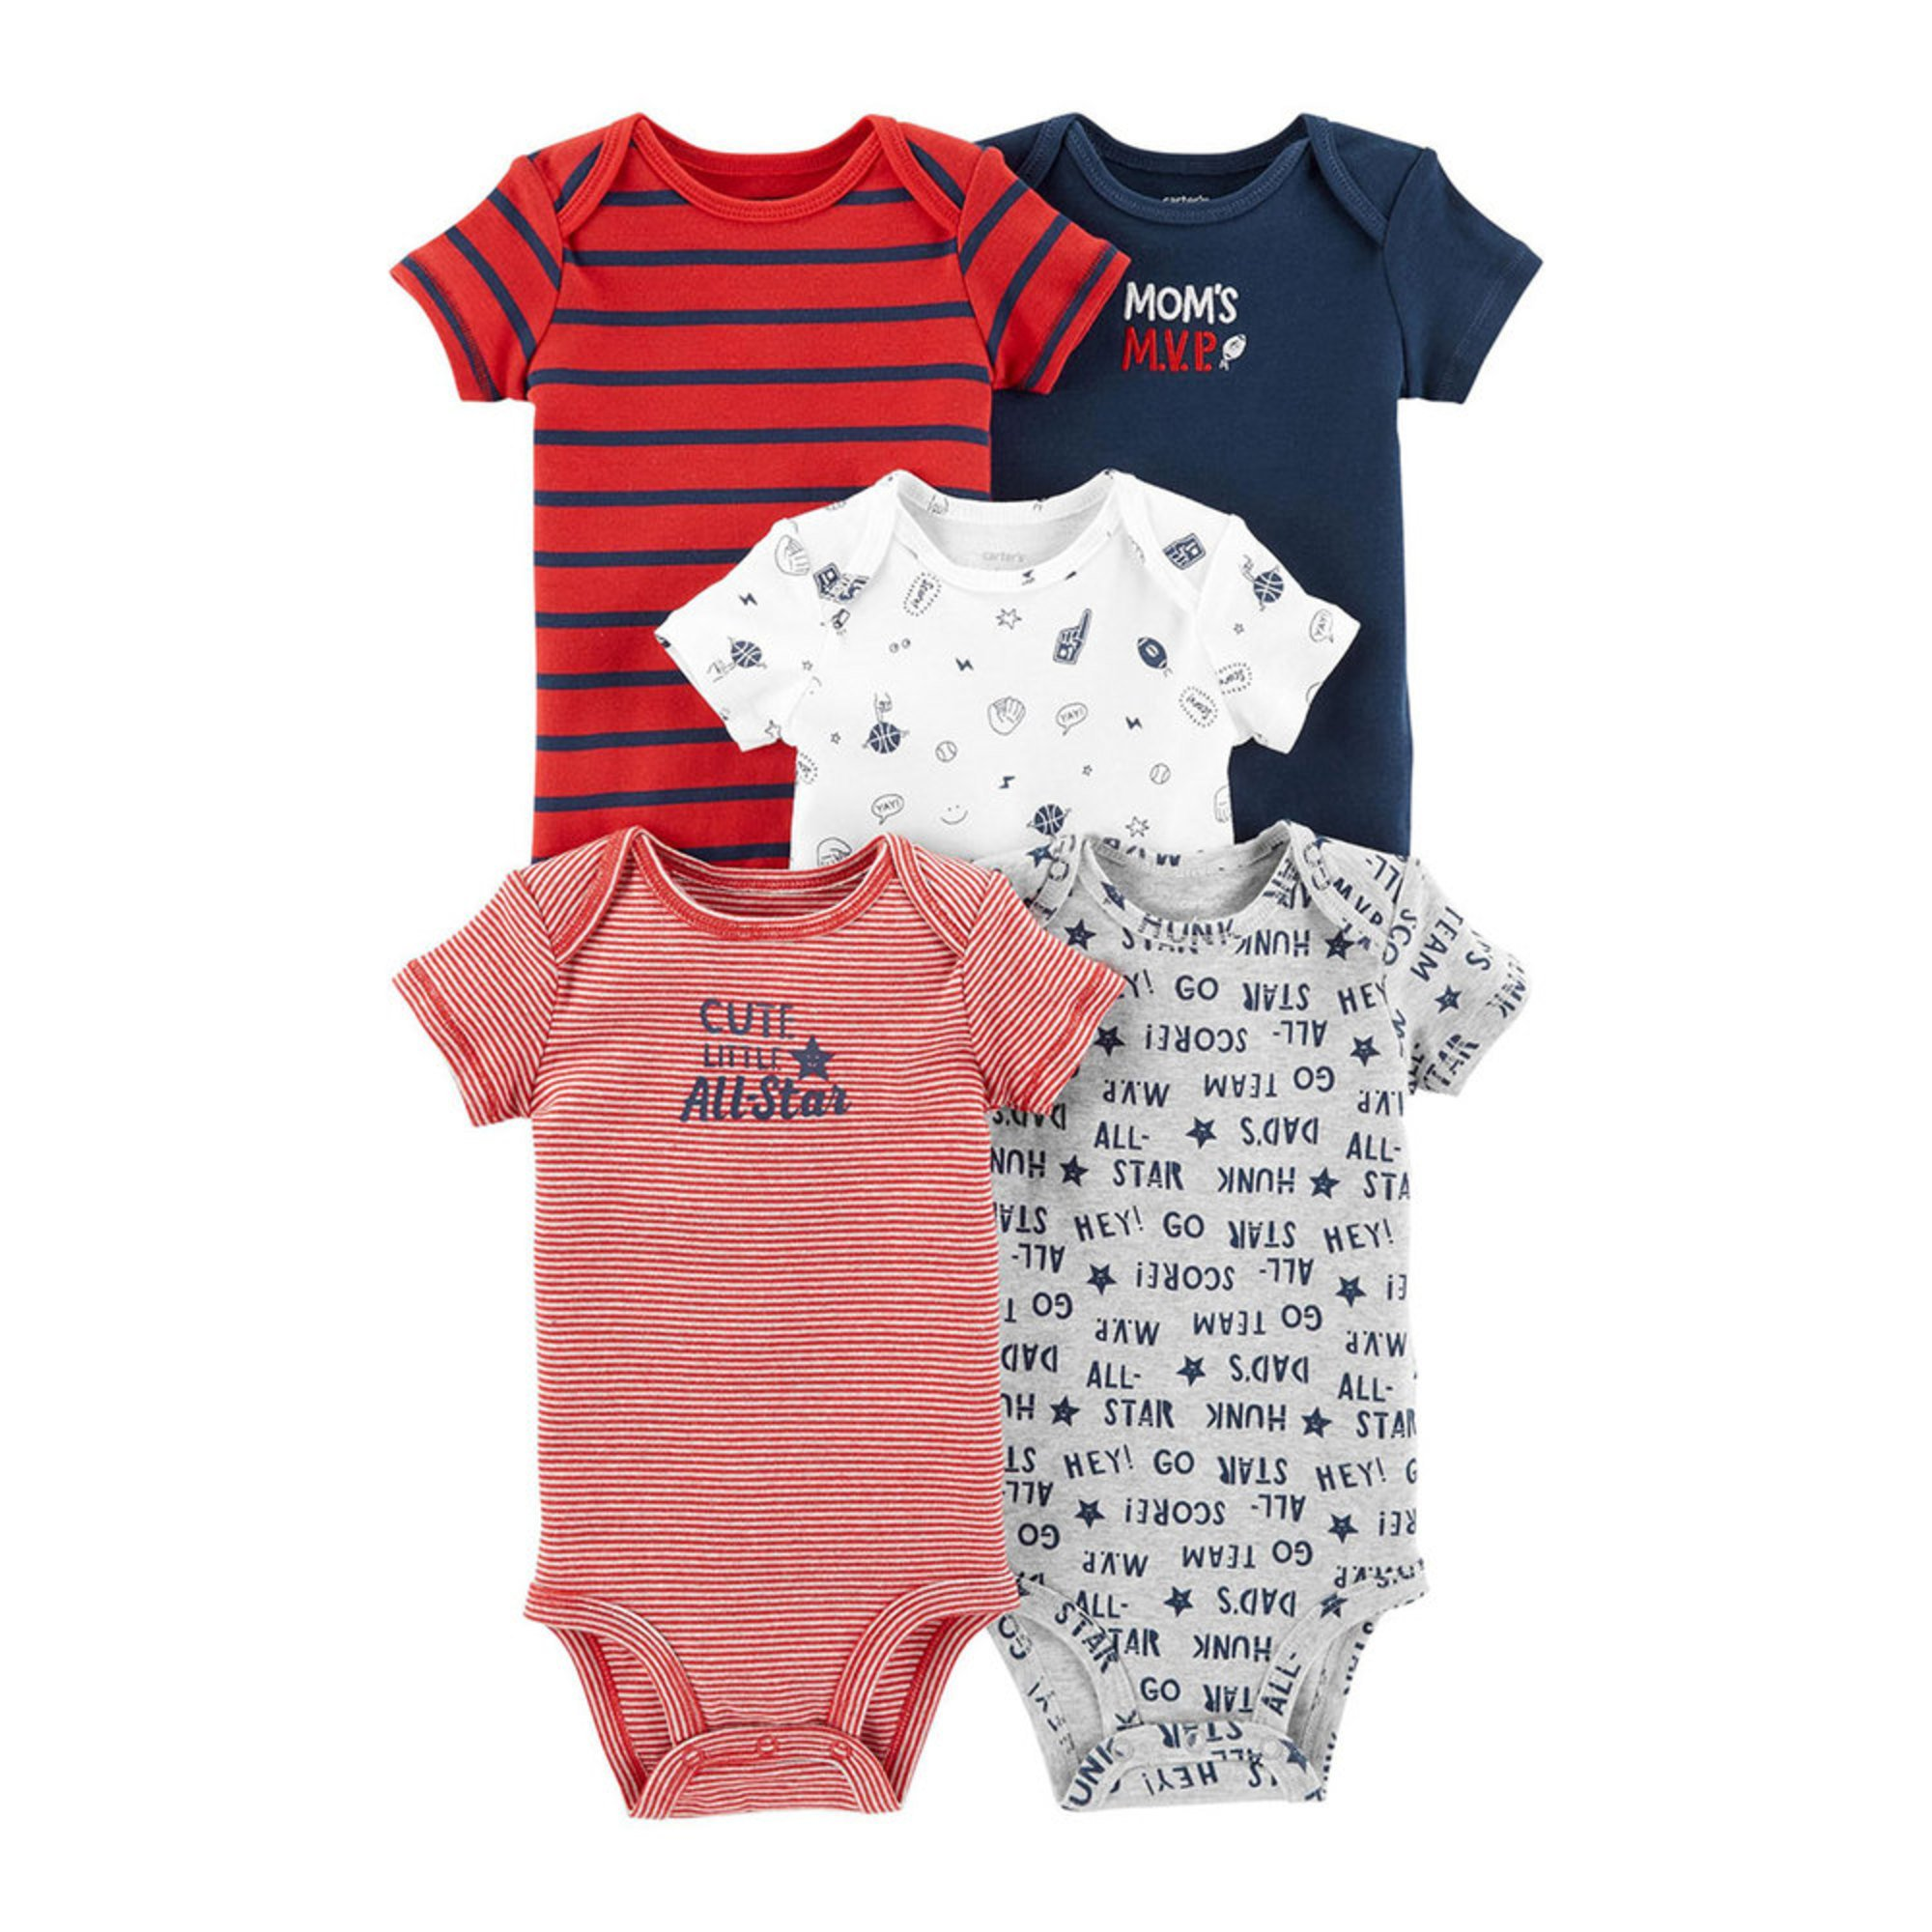 06fb7252e Carter's Baby Boys' 5-pack Bodysuit Set | Baby Boys' One Piece ...